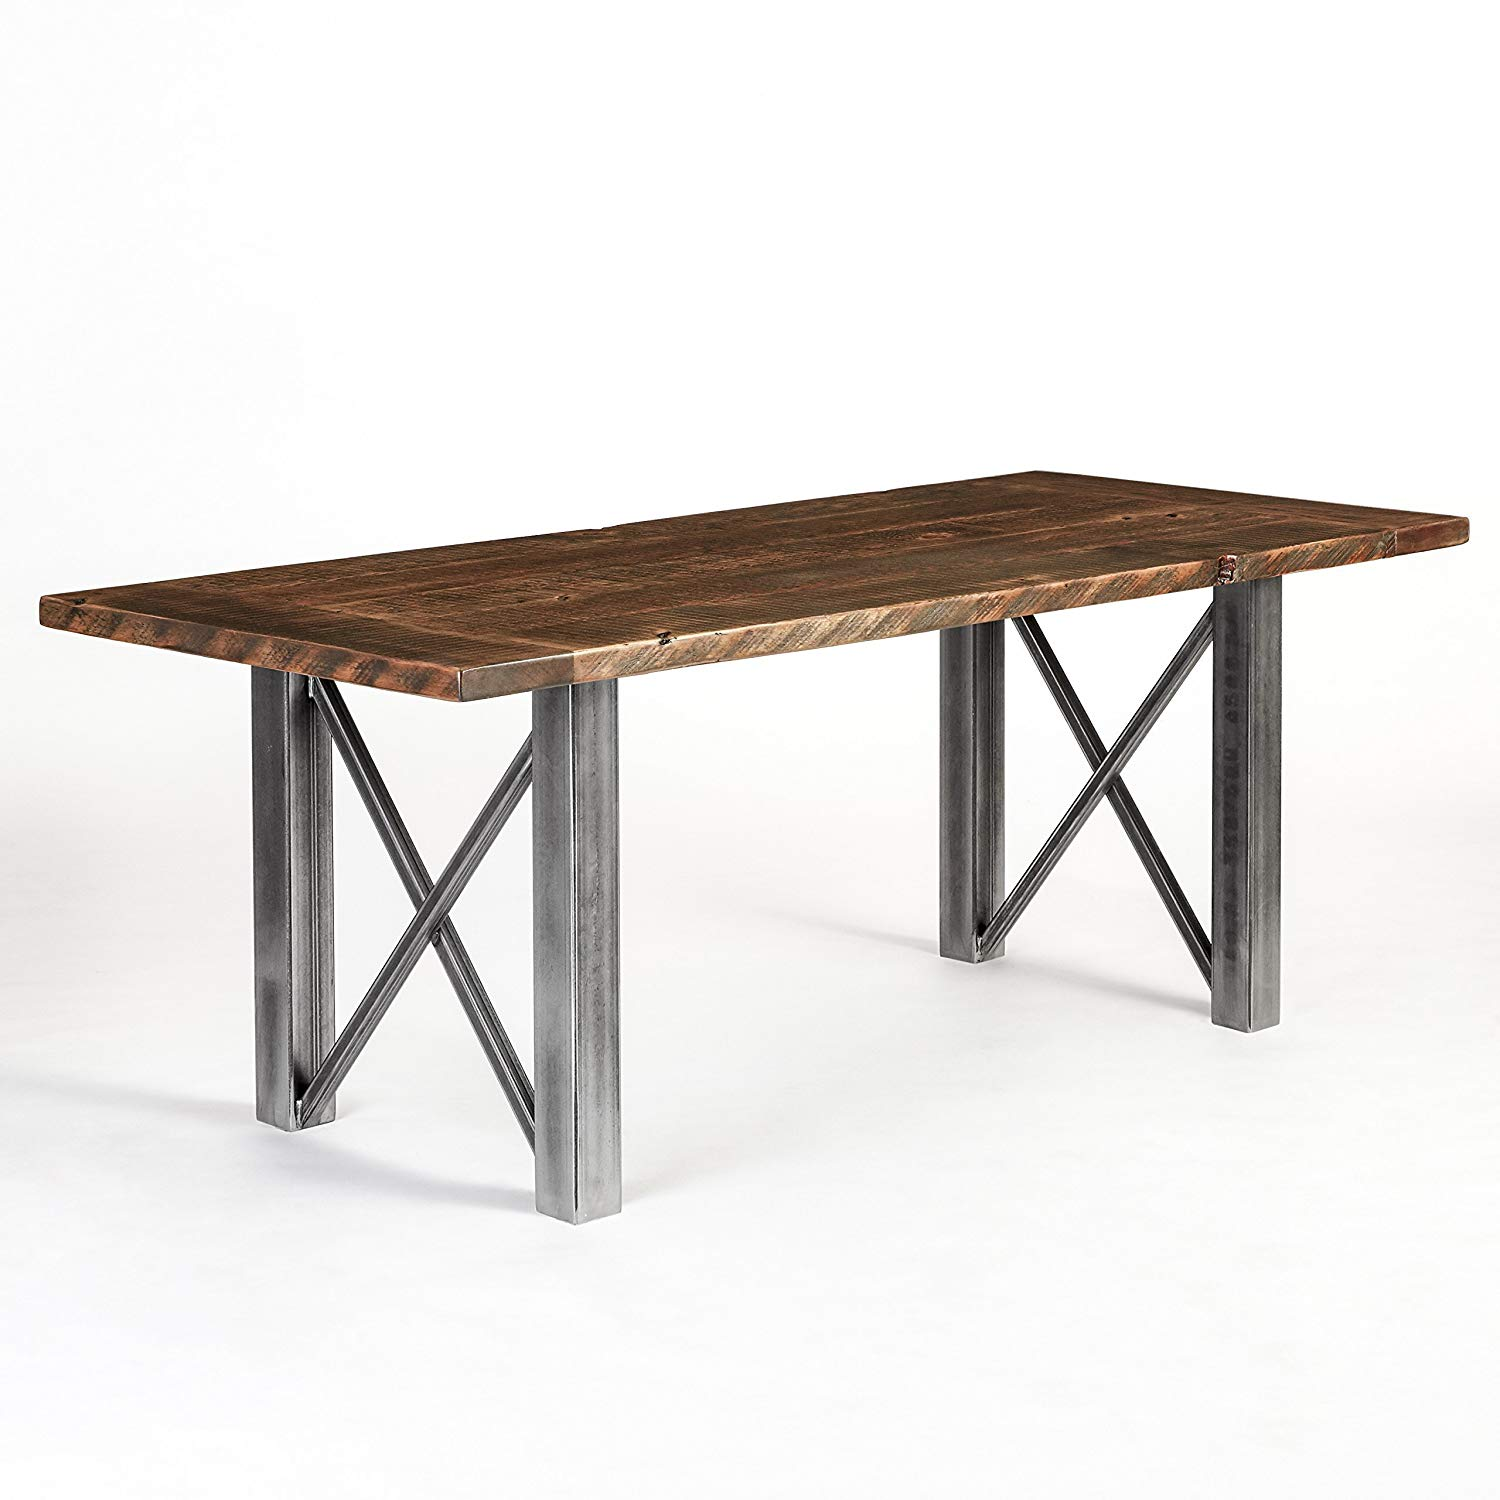 Cheap Reclaimed Wood Dining Find Reclaimed Wood Dining Deals On Line At Alibaba Com